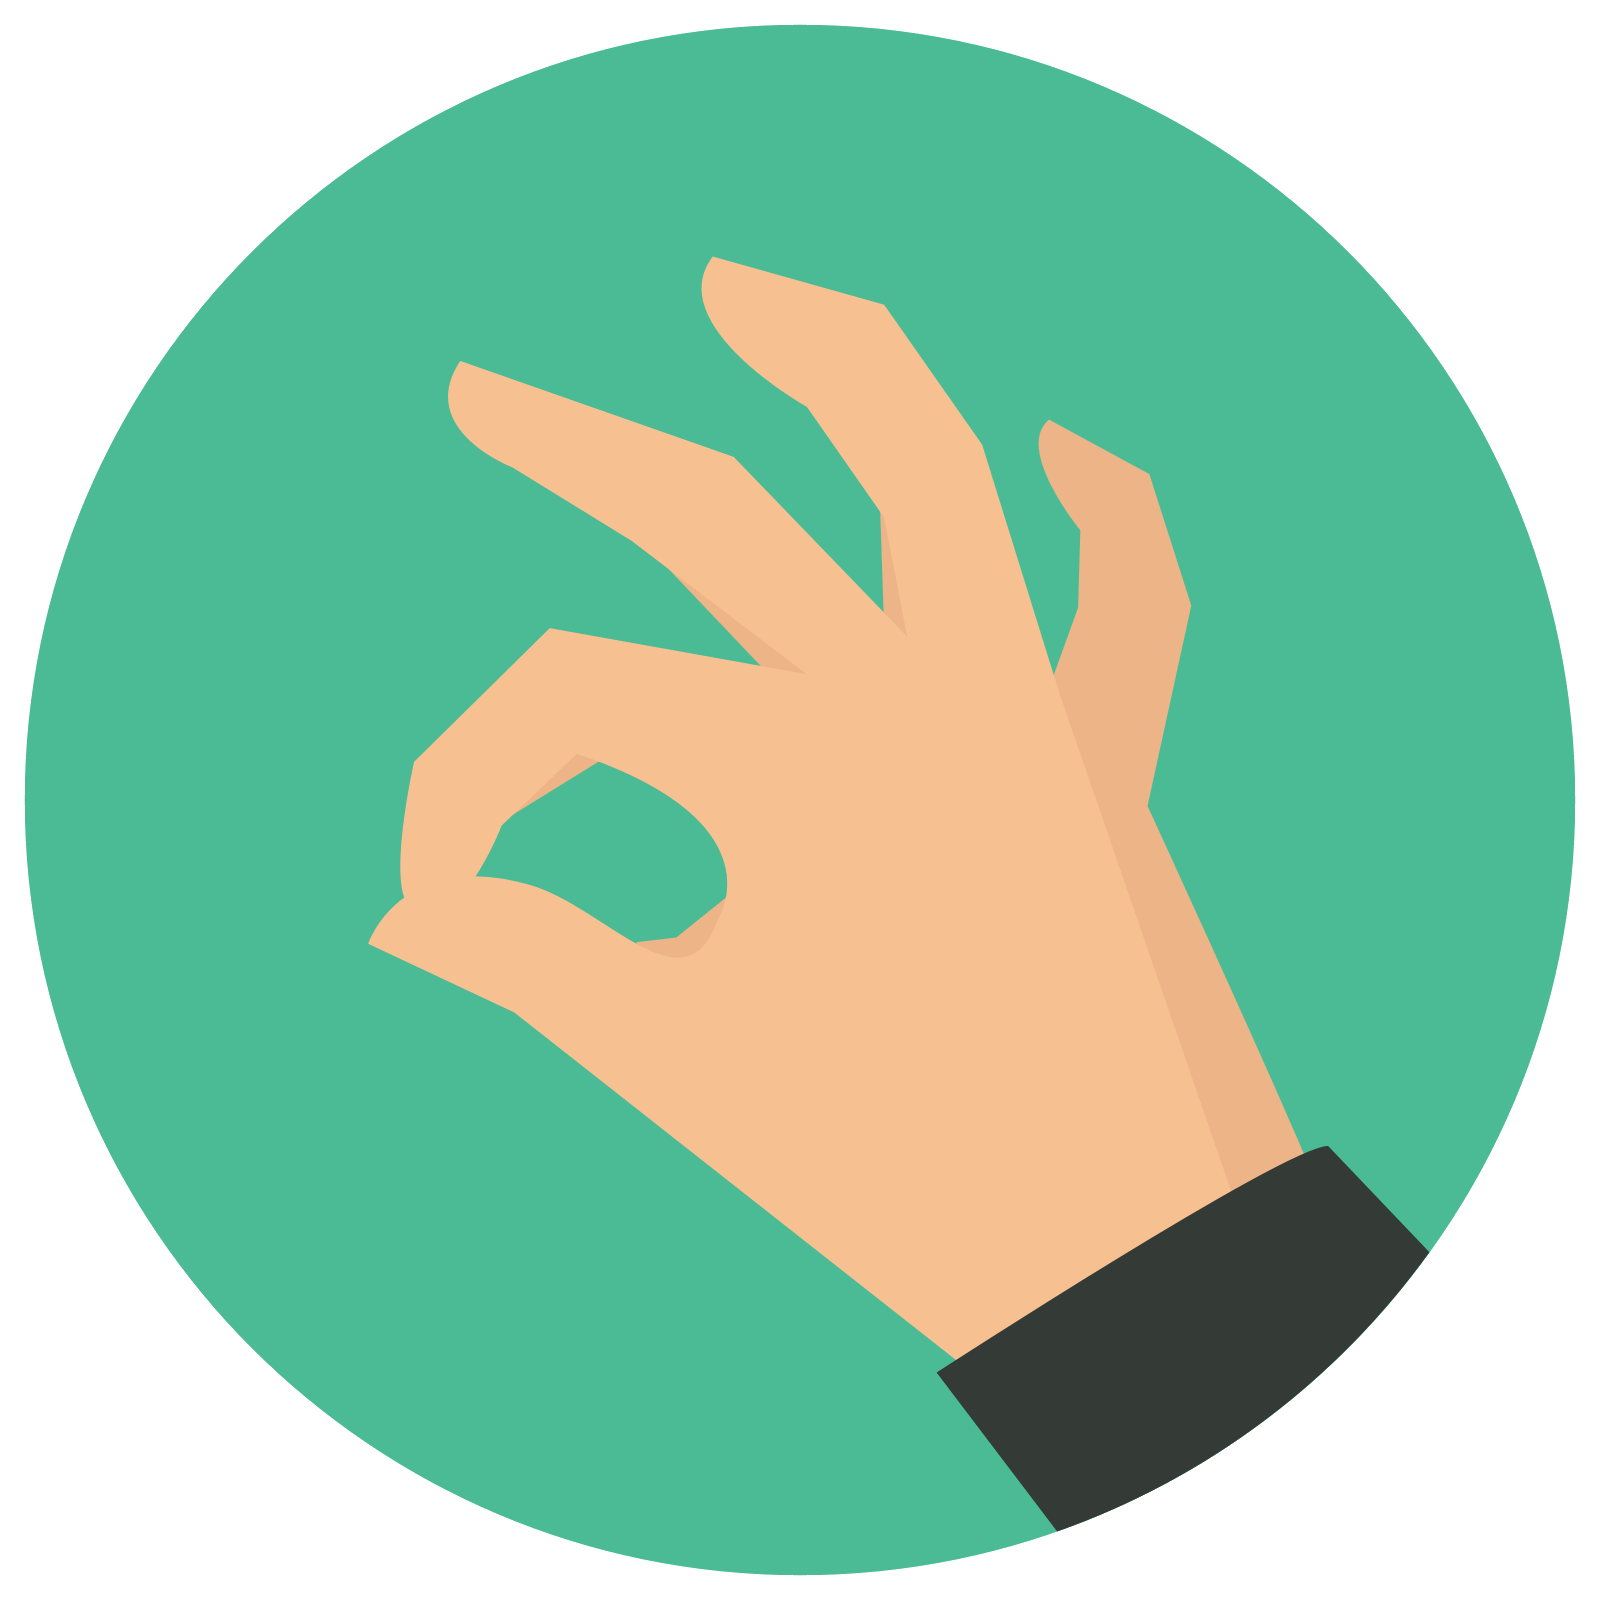 Ok Hand Icon This Is A Picture Of A Right Hand Giving The Okay Symbol With It S Thumb And Index Finger The Other Three Finge Hands Icon Icon Graphic Design